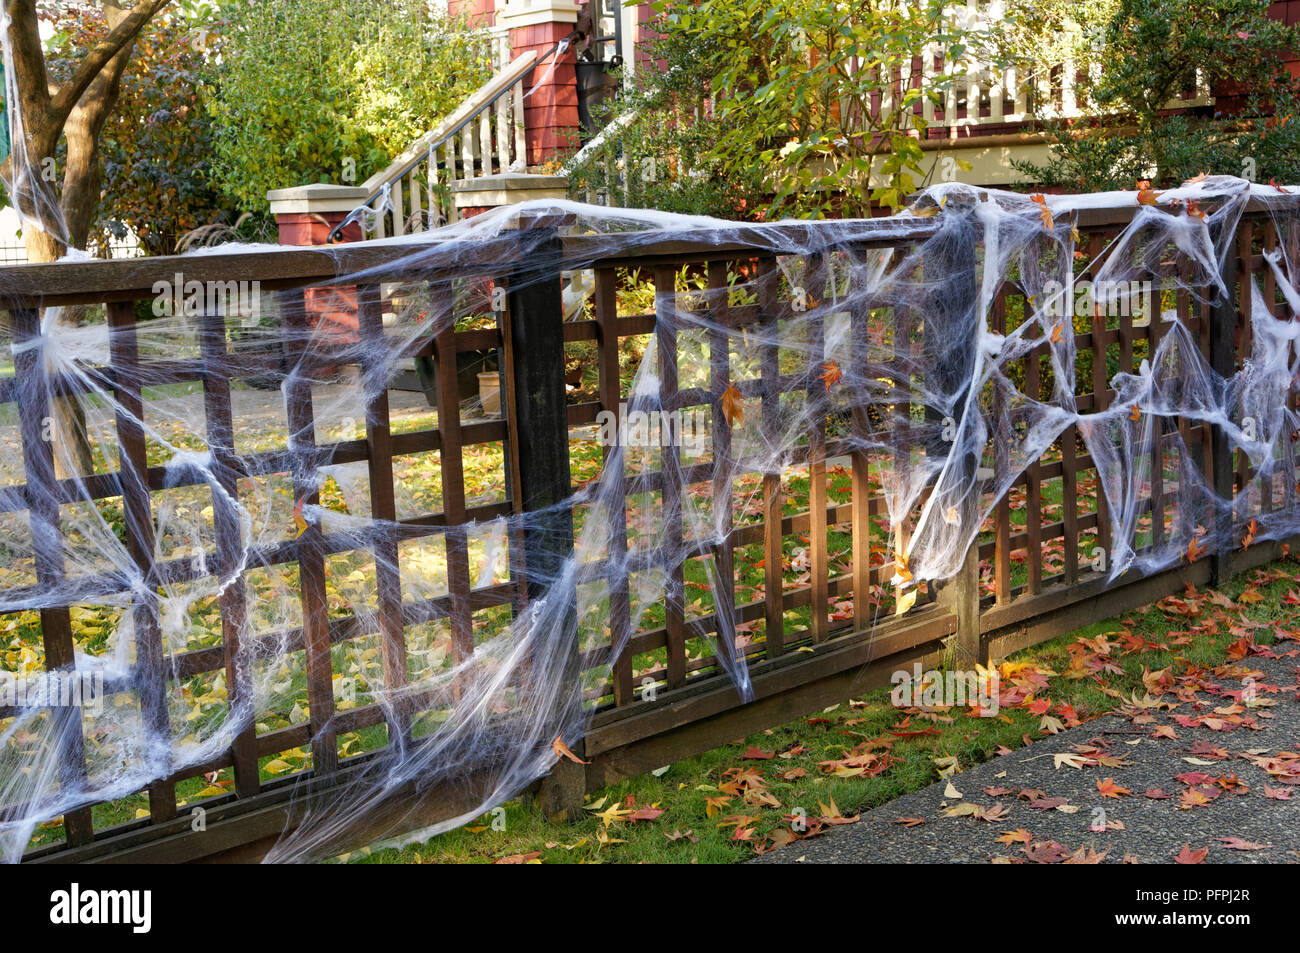 White Halloween spider webs decorating the fence of a house - Stock Image